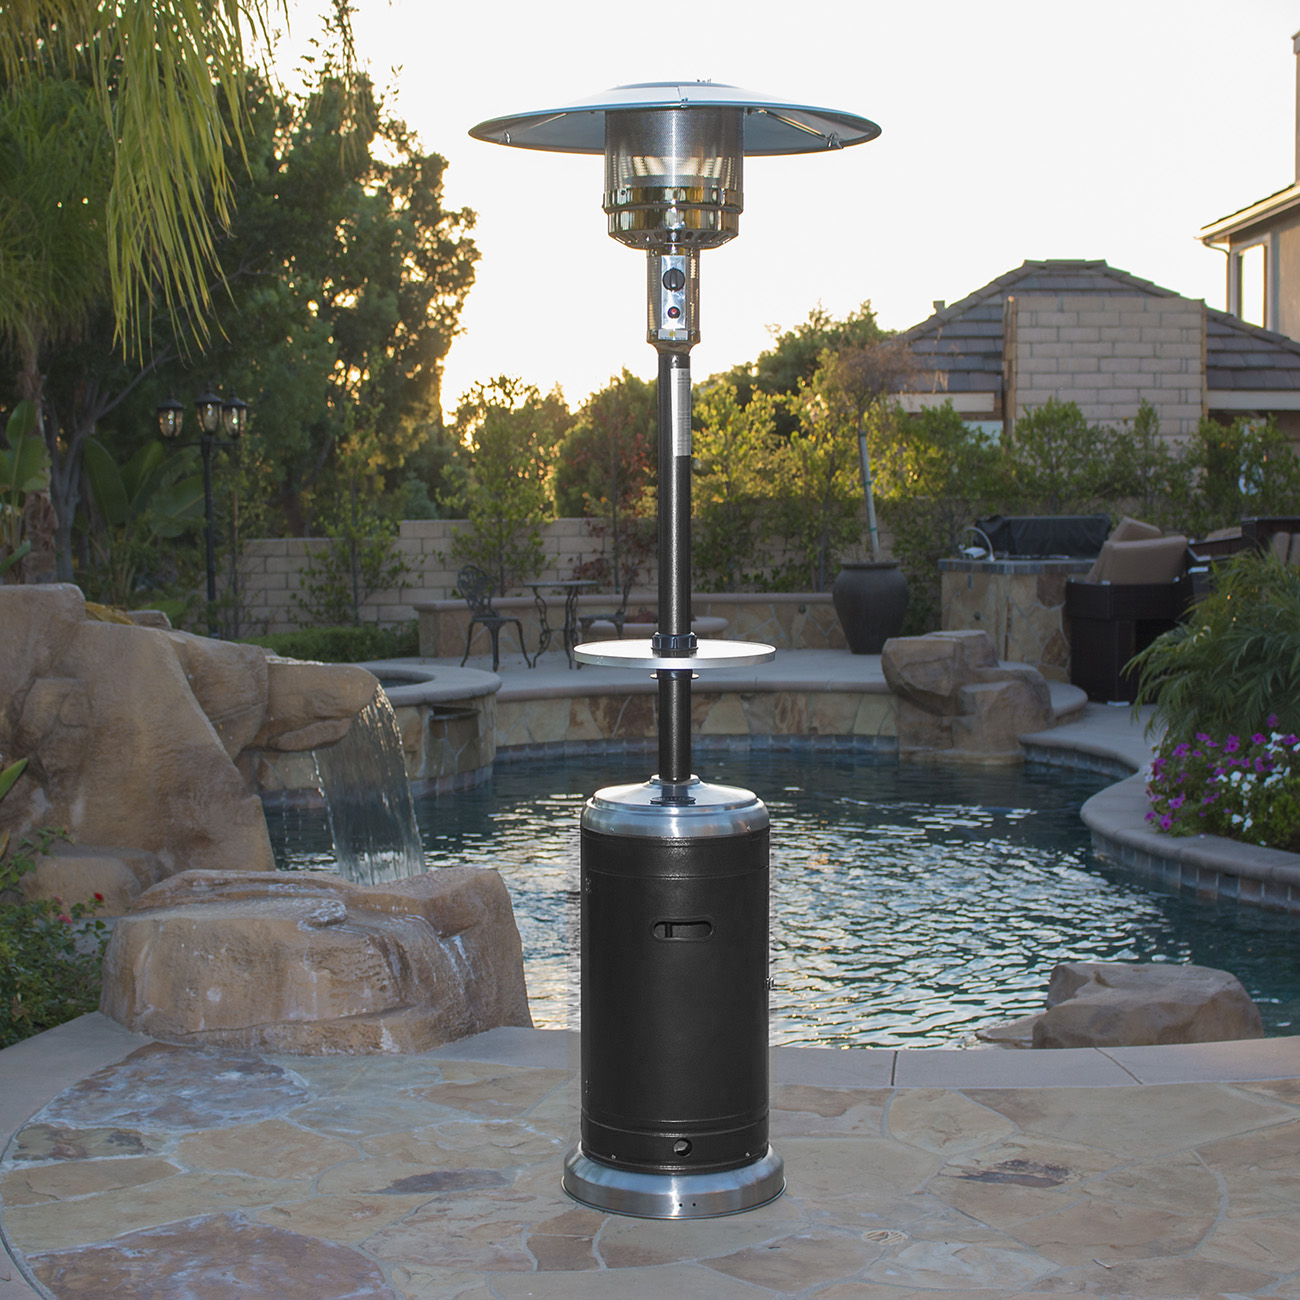 Belleze 48 000 Btu Outdoor Patio Heater Lp Gas W Drink Table Wheels Bronze Stainless Steel